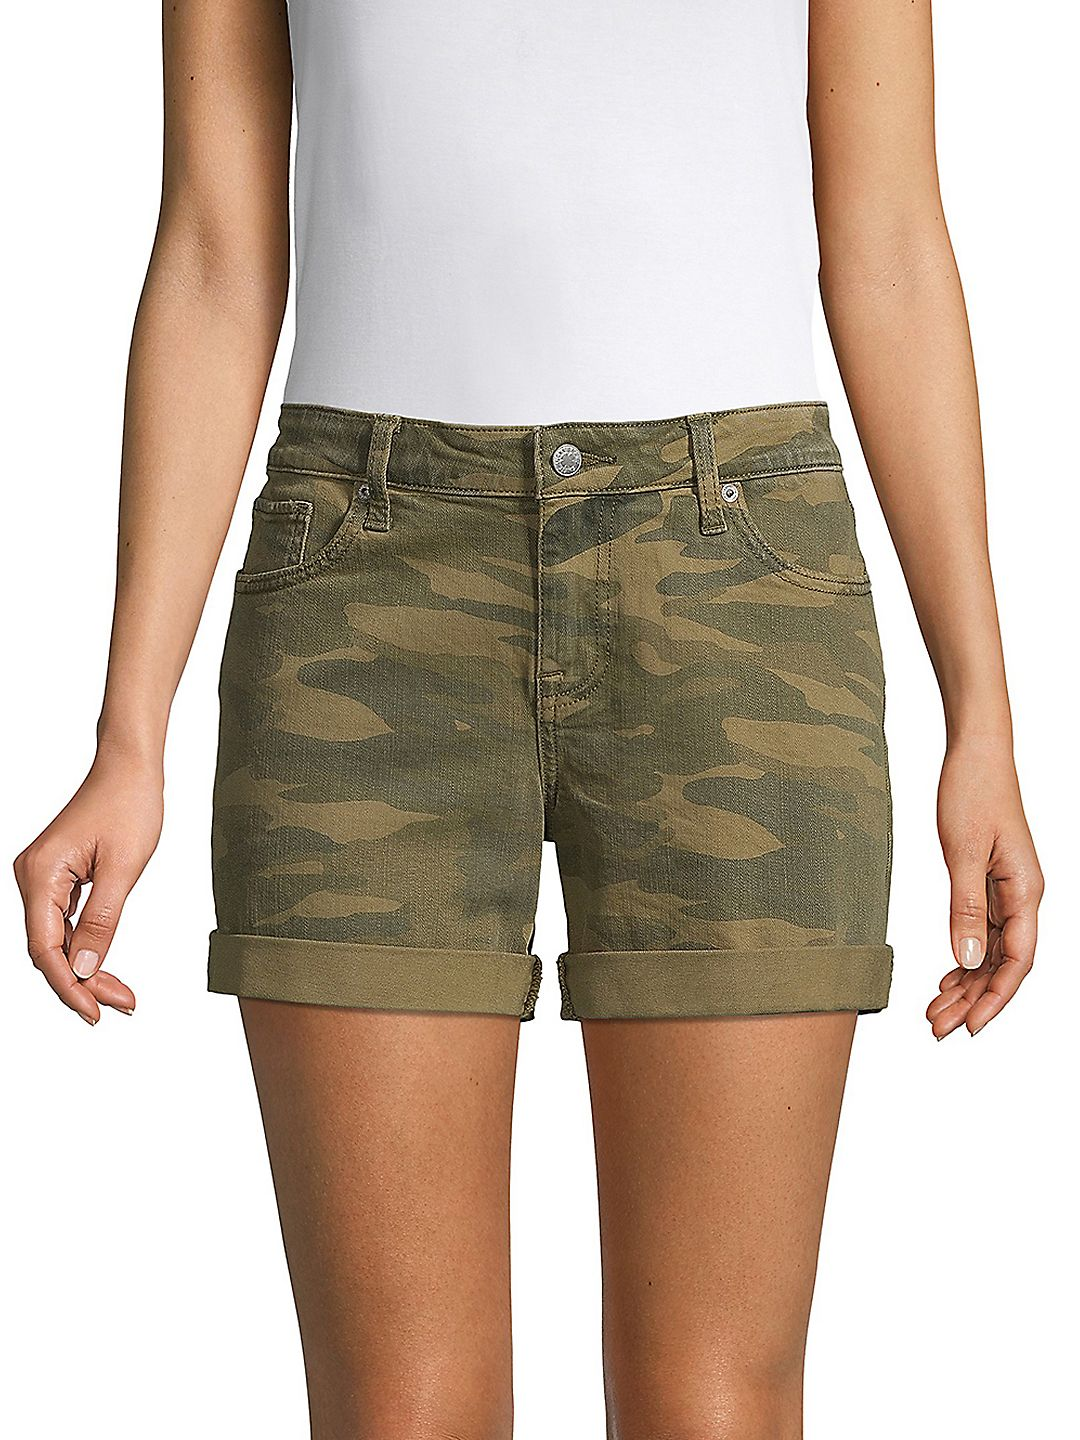 Camouflage Stretch Shorts